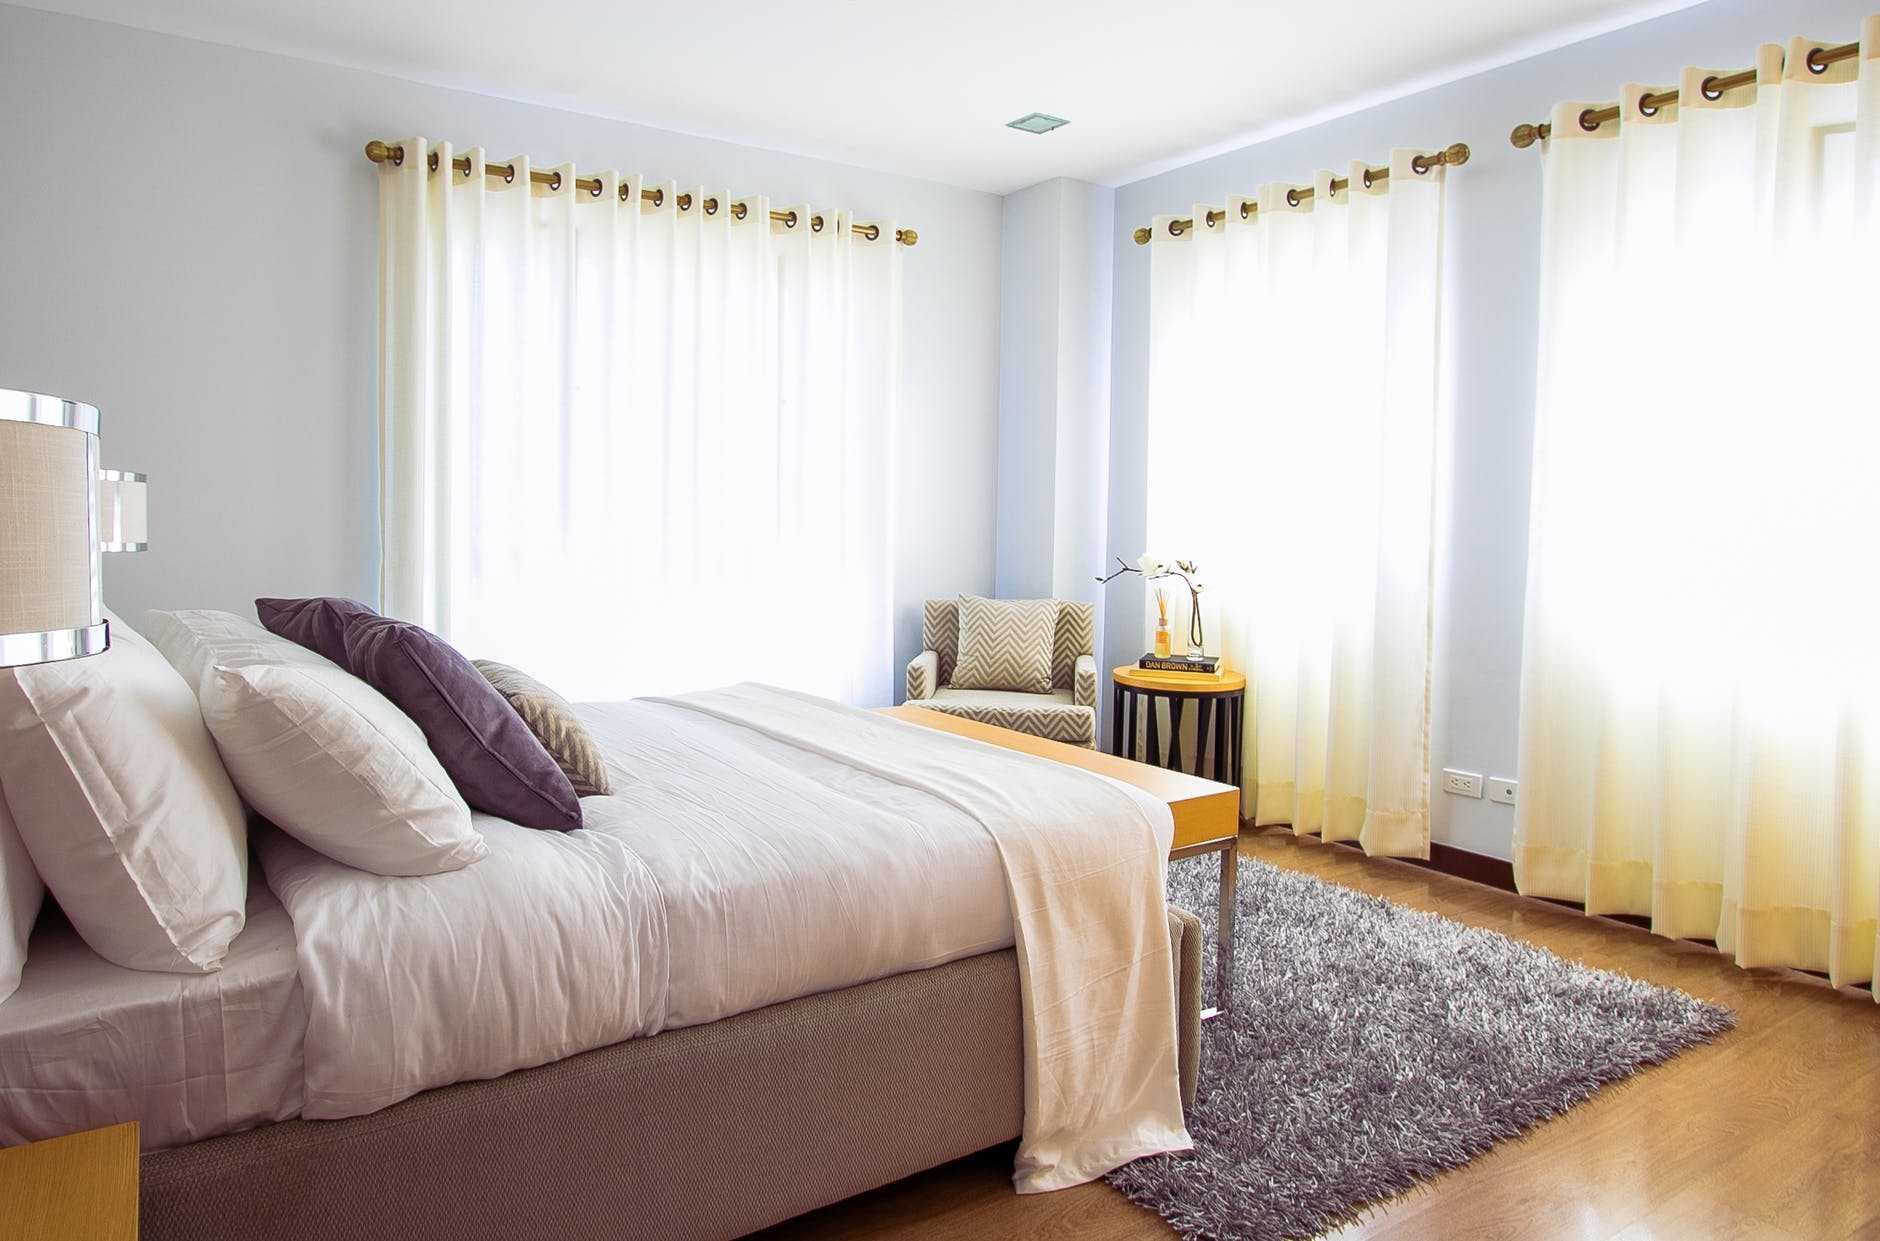 Decorating Your Bedroom When Buying A New Home